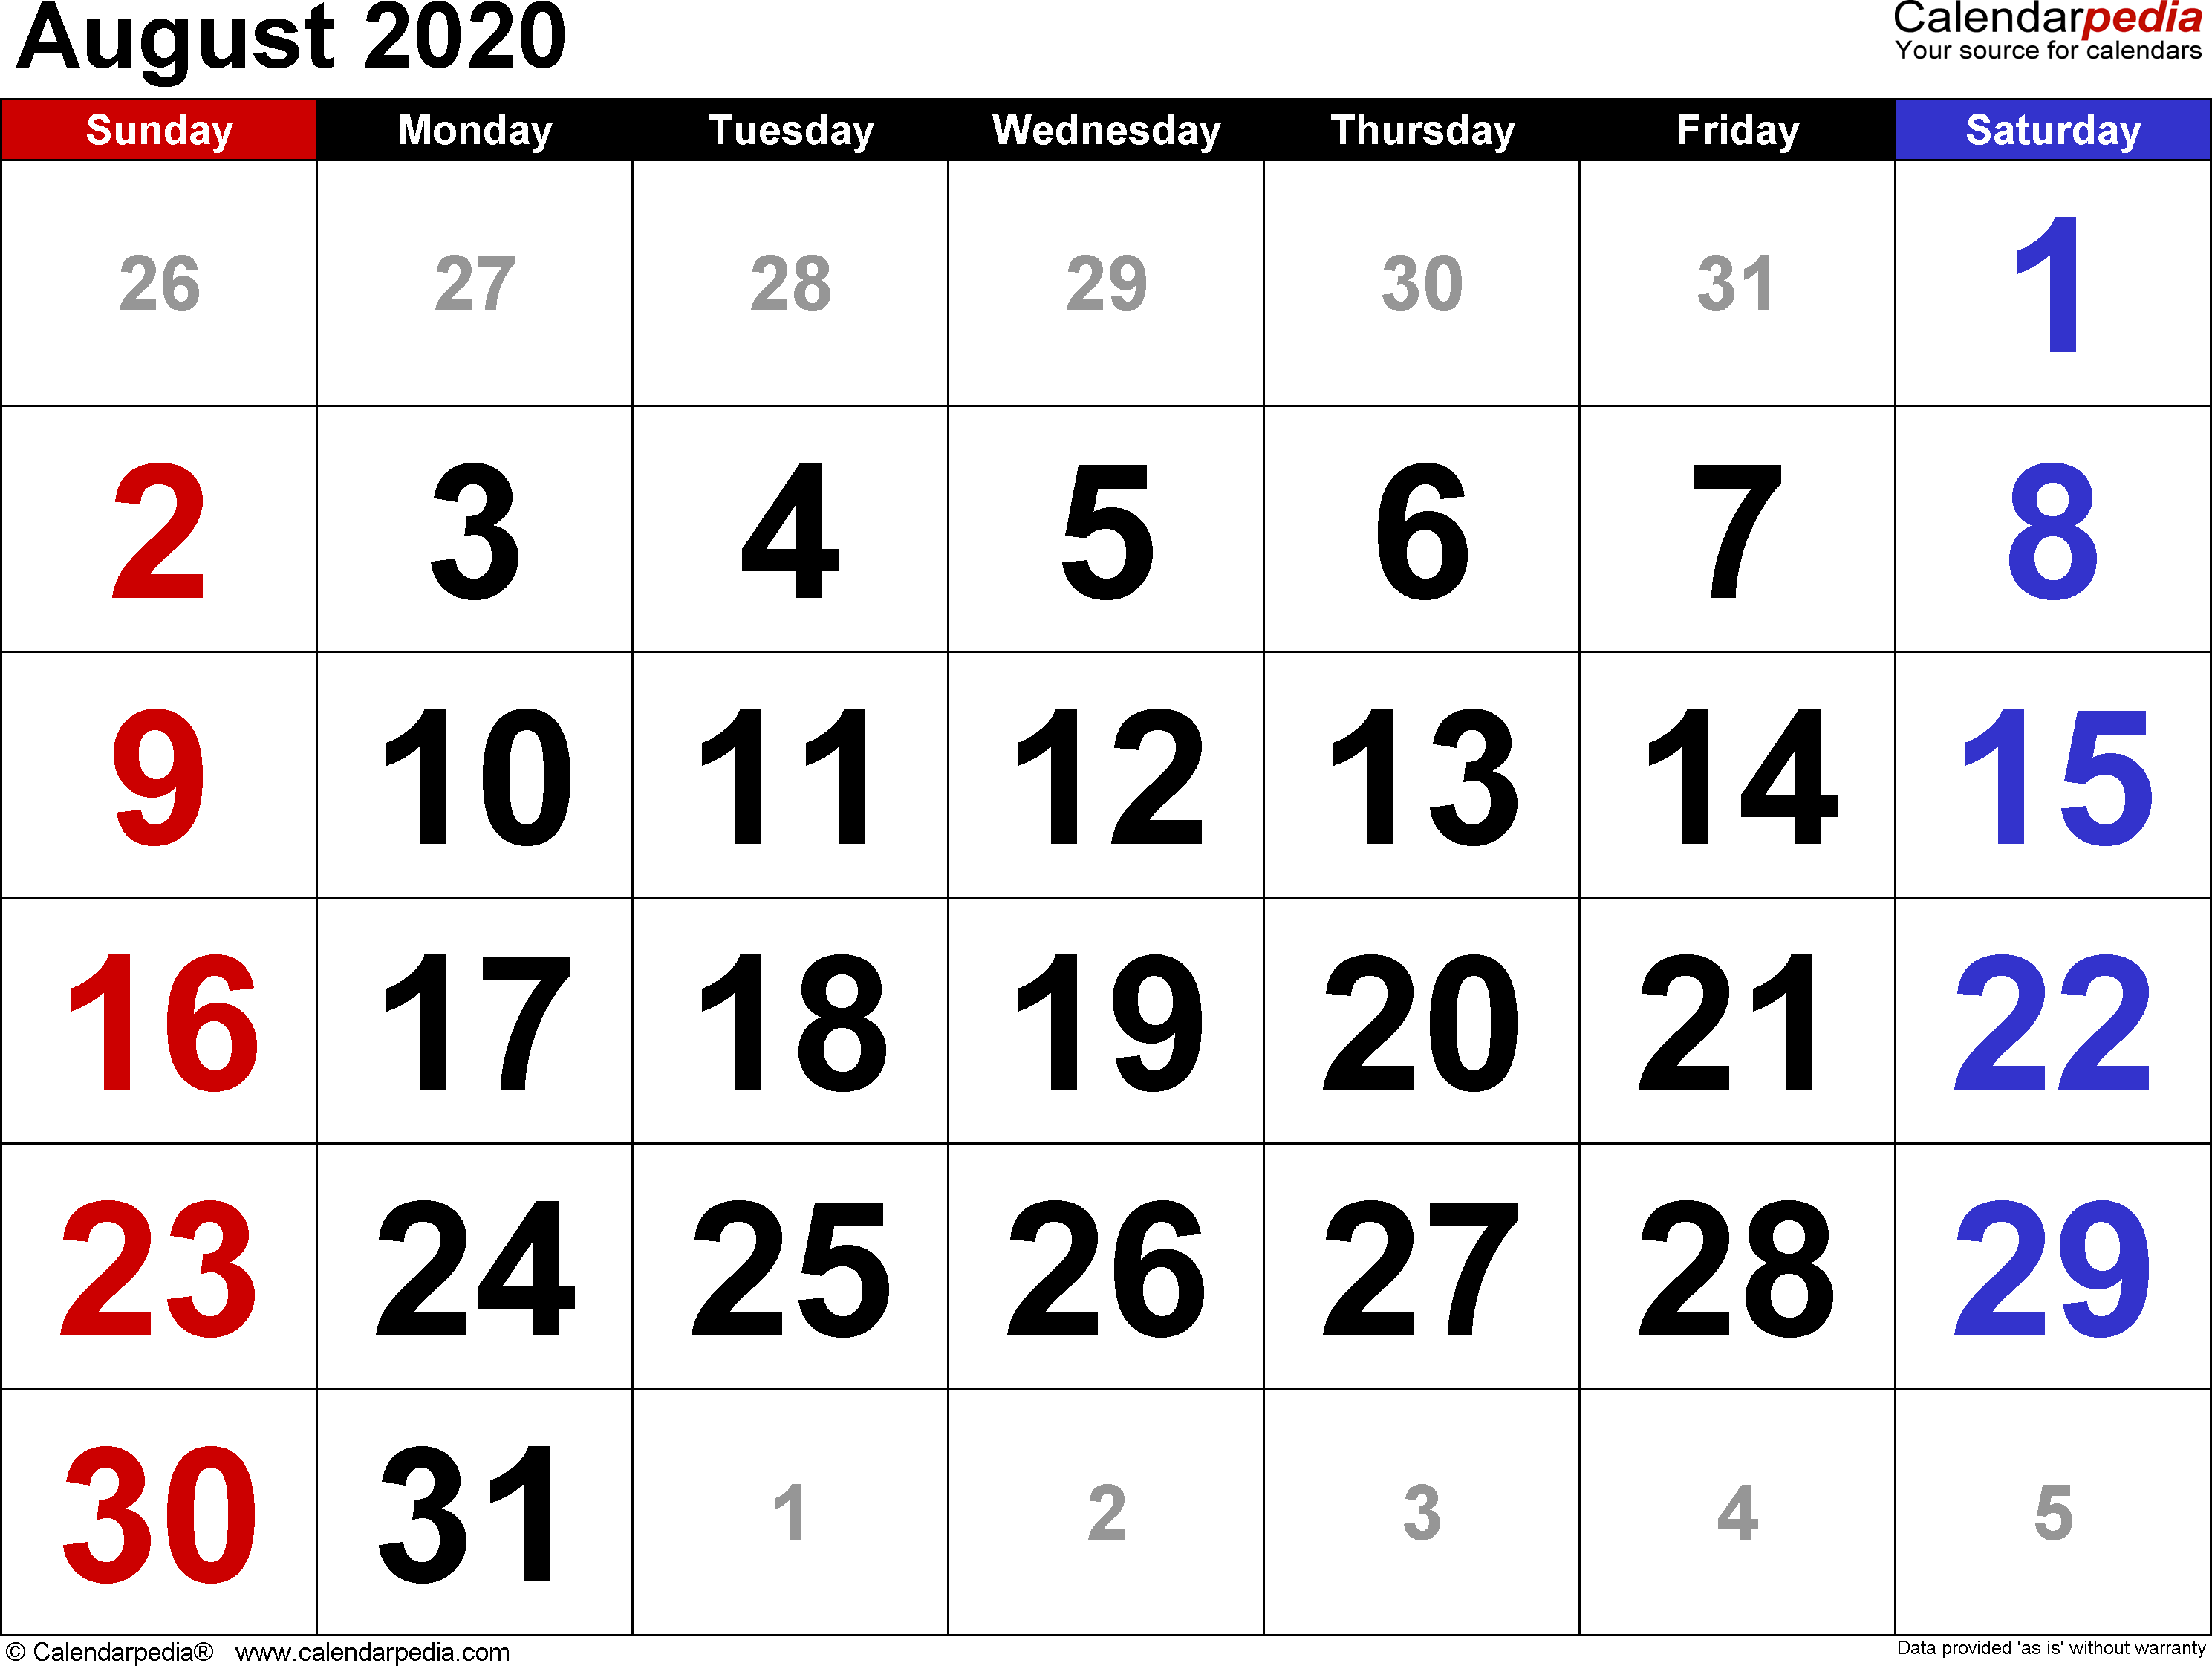 Calendar Aug 2020 August 2020 Calendars for Word, Excel & PDF